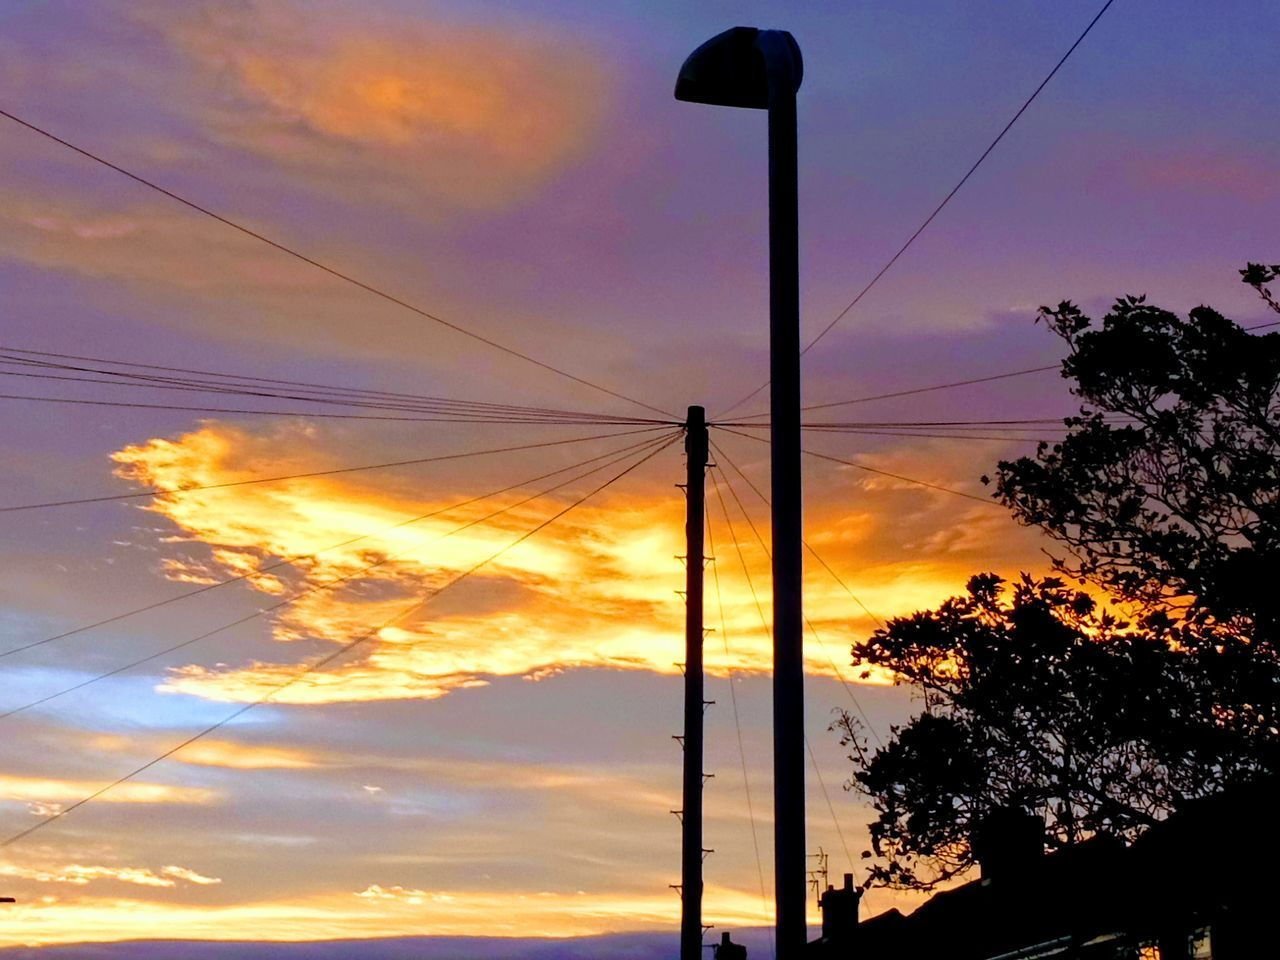 sky, sunset, silhouette, cloud - sky, tree, cable, orange color, plant, beauty in nature, power line, electricity, no people, low angle view, nature, connection, scenics - nature, tranquility, outdoors, technology, power supply, telephone line